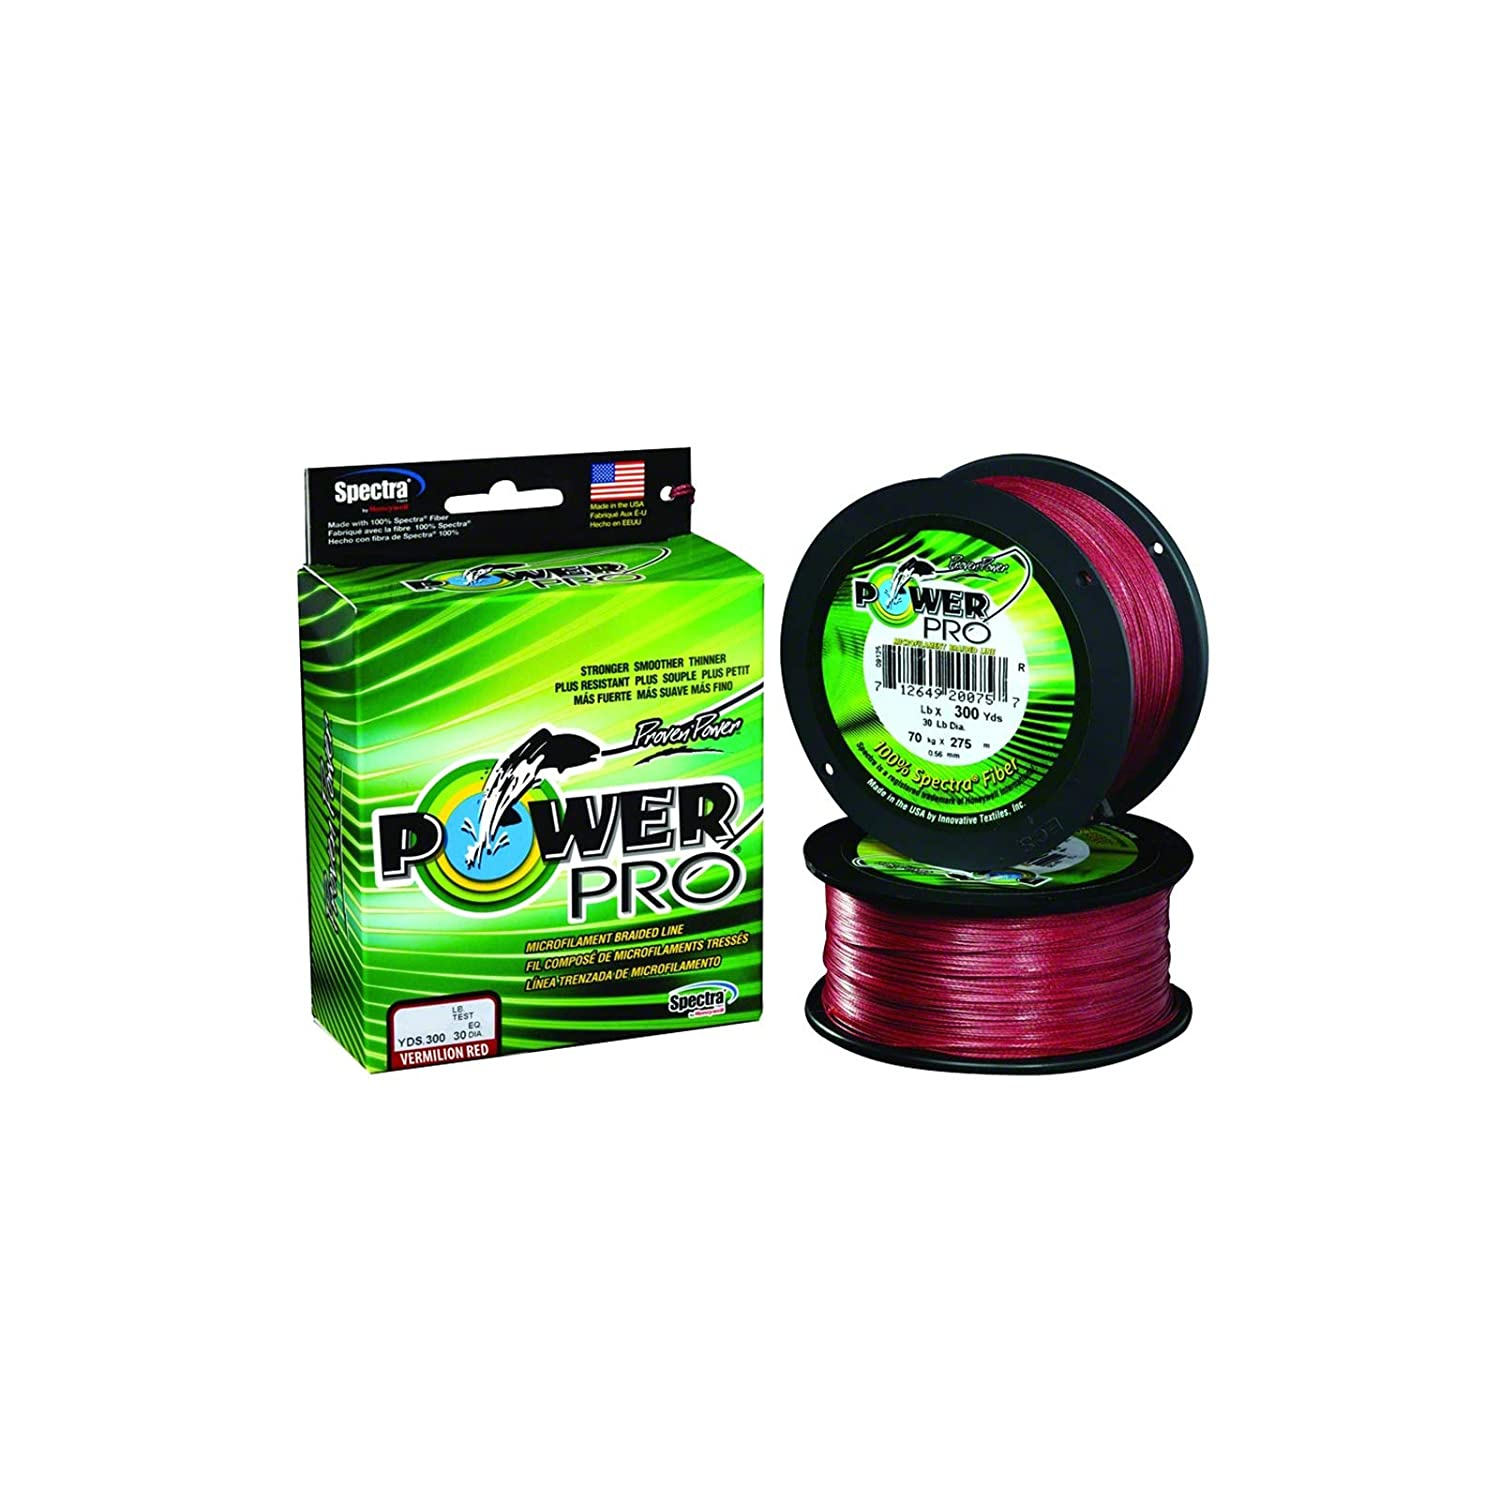 Power Pro Braided Spectra Line 50lb by 300yds Red 4953